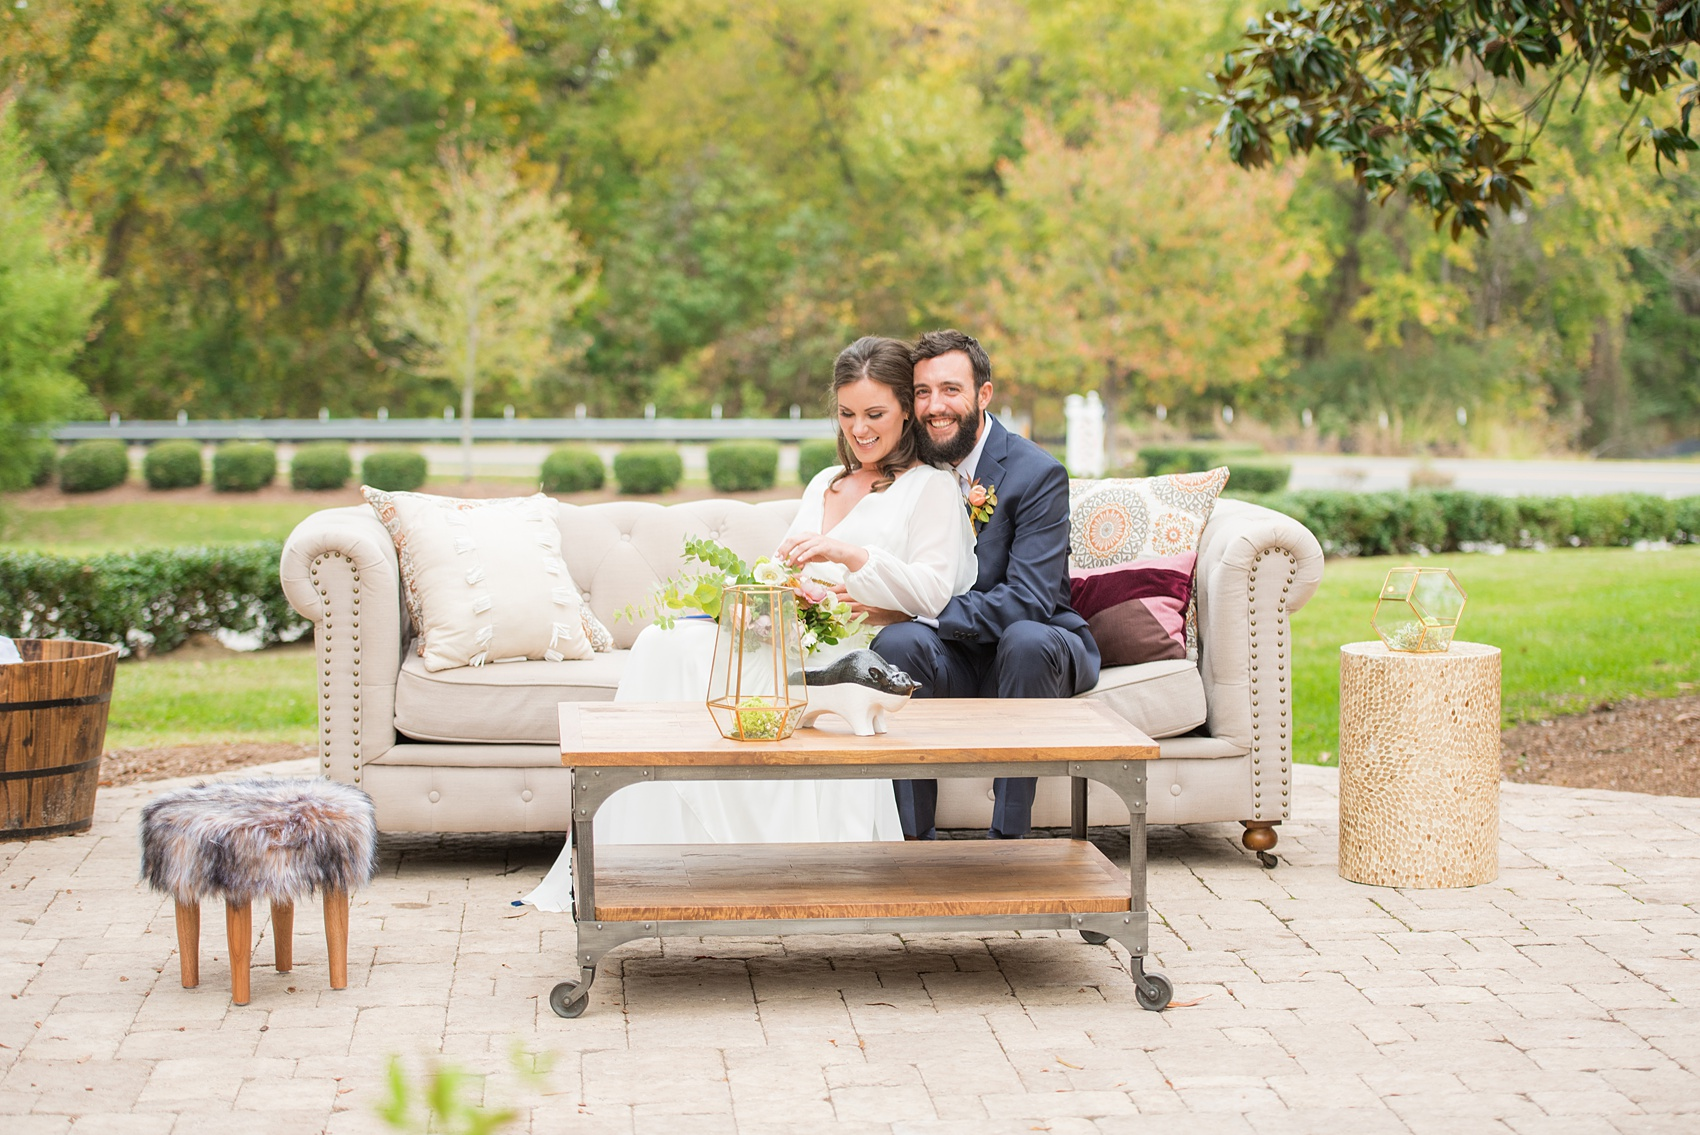 Mikkel Paige Photography photos from a wedding at Leslie-Alford Mims House in North Carolina. Photo of the bride and groom on their outdoor reception lounge furniture from Greenhouse Picker Sisters for a Mad Dash Weddings event.